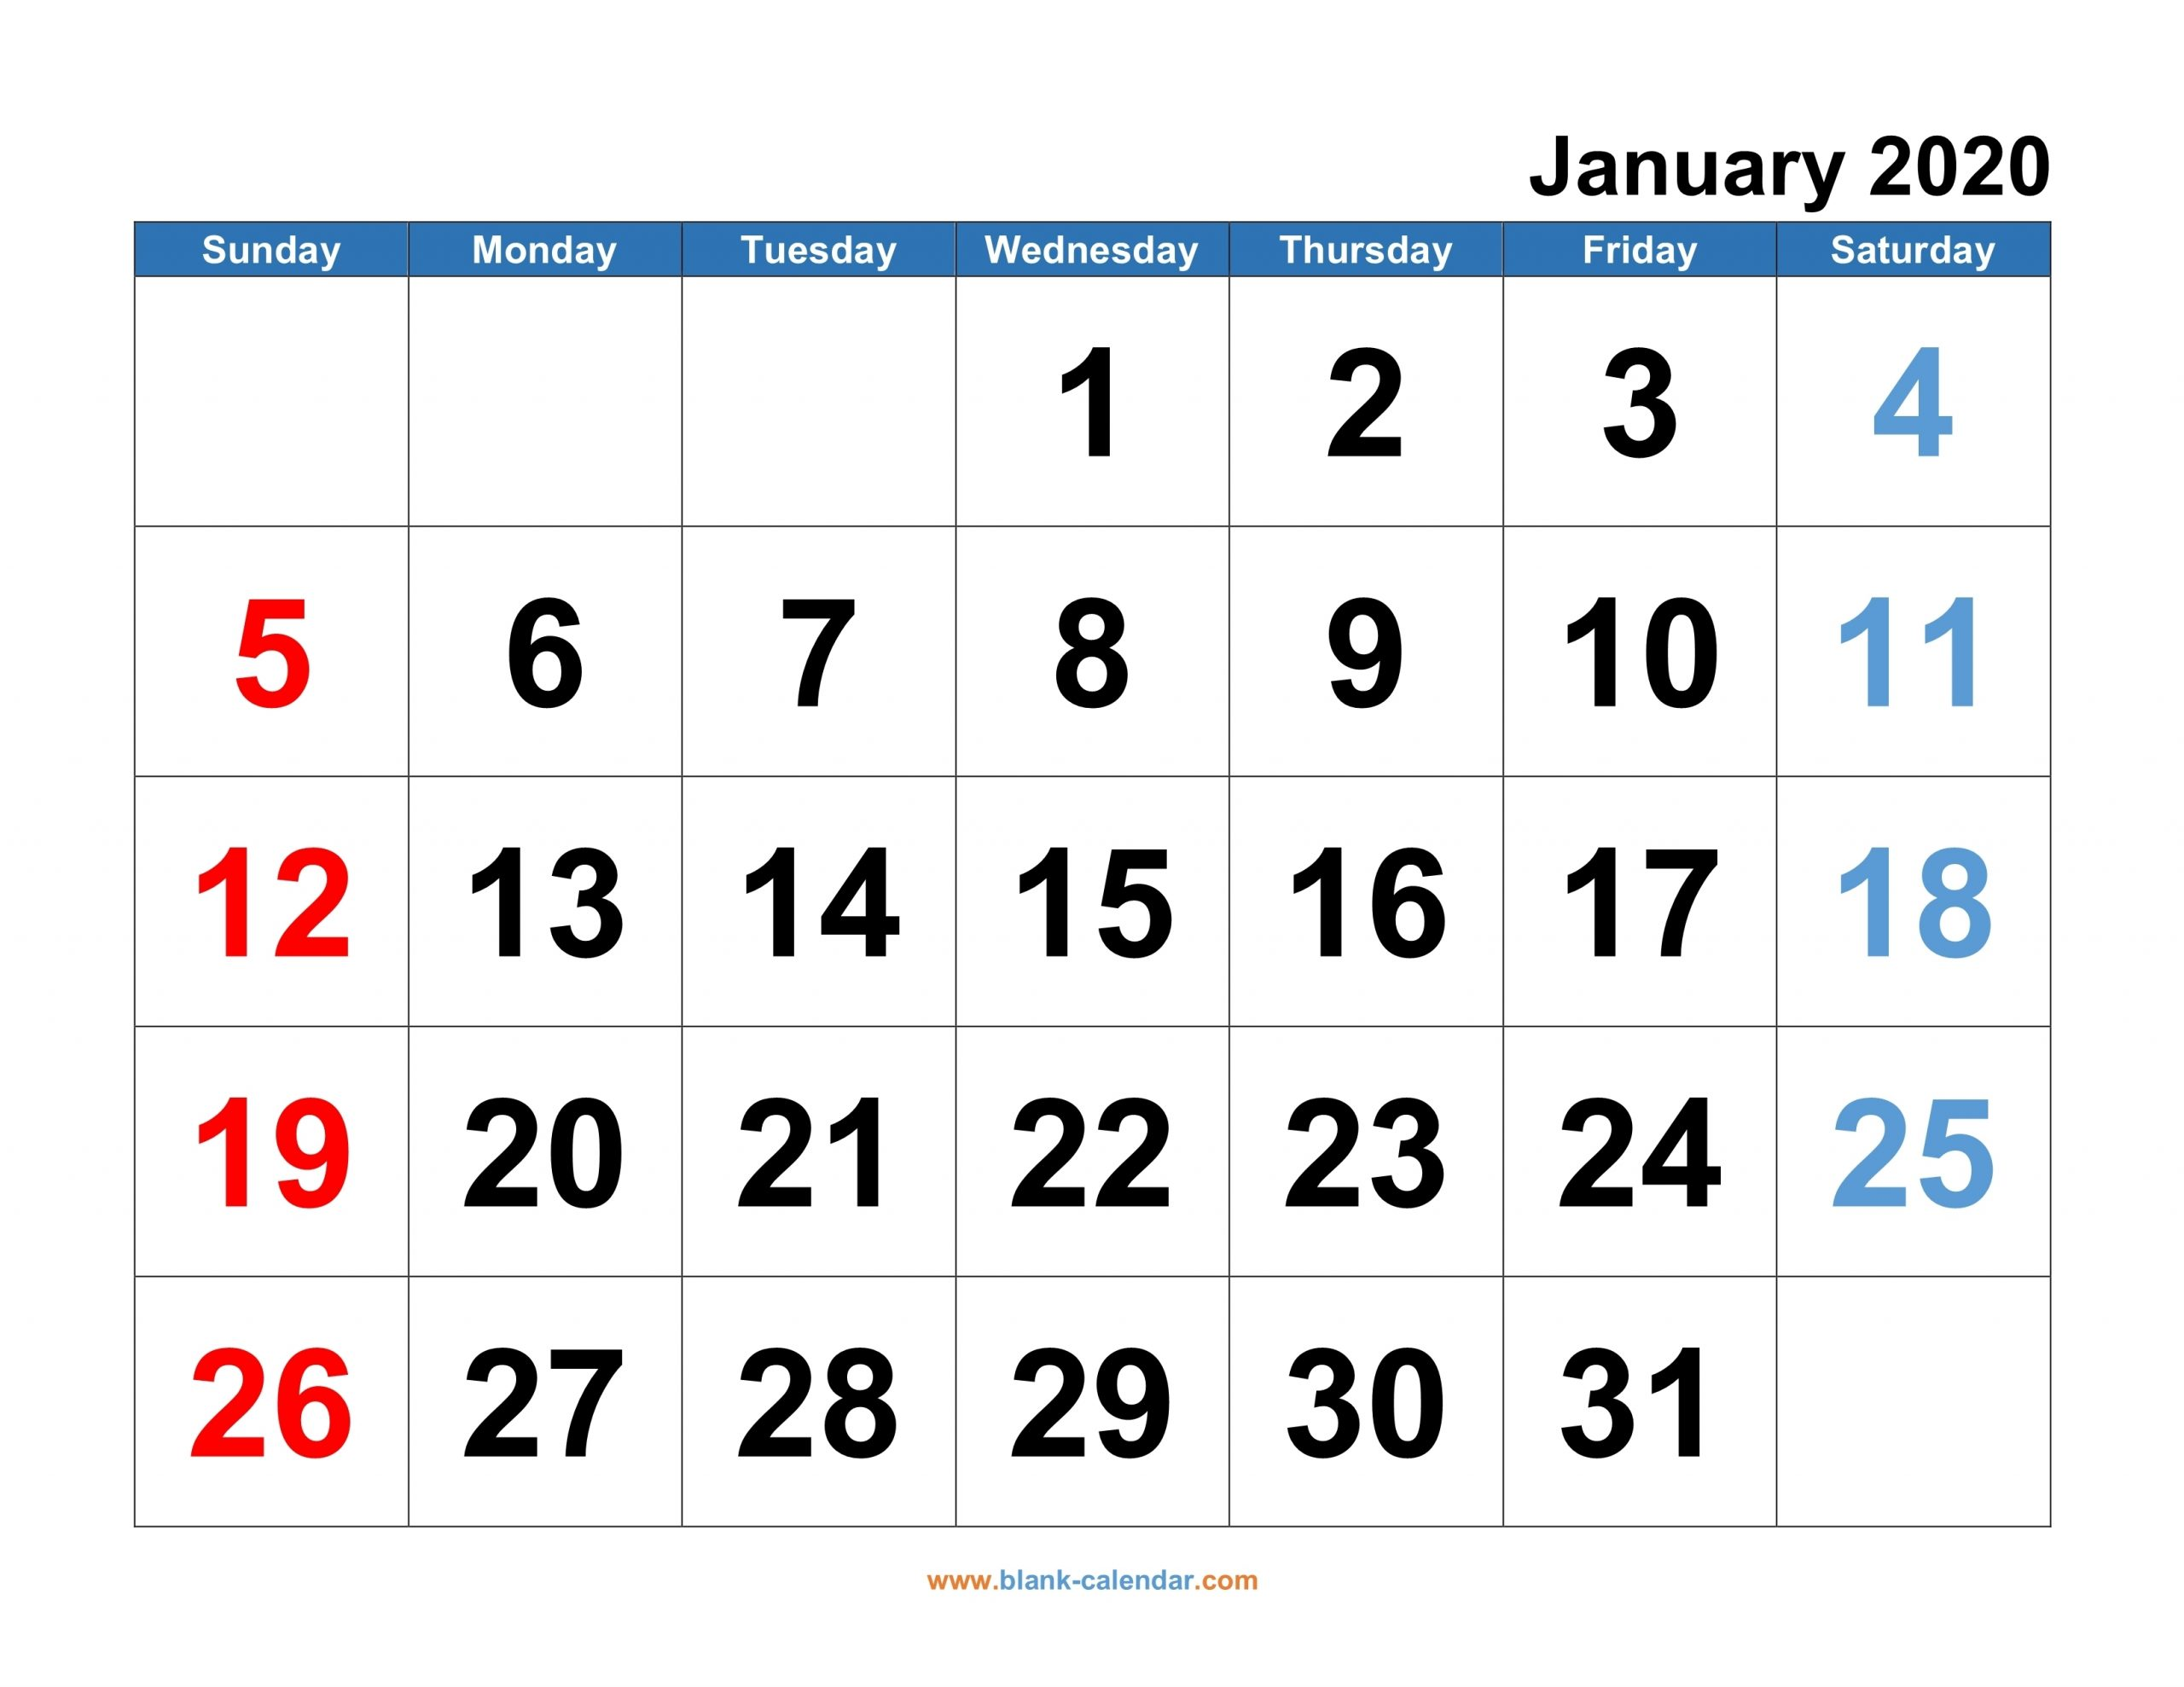 Monthly Calendar 2020 | Free Download, Editable And Printable intended for 2020 Calendar Printable Free Pdf Color